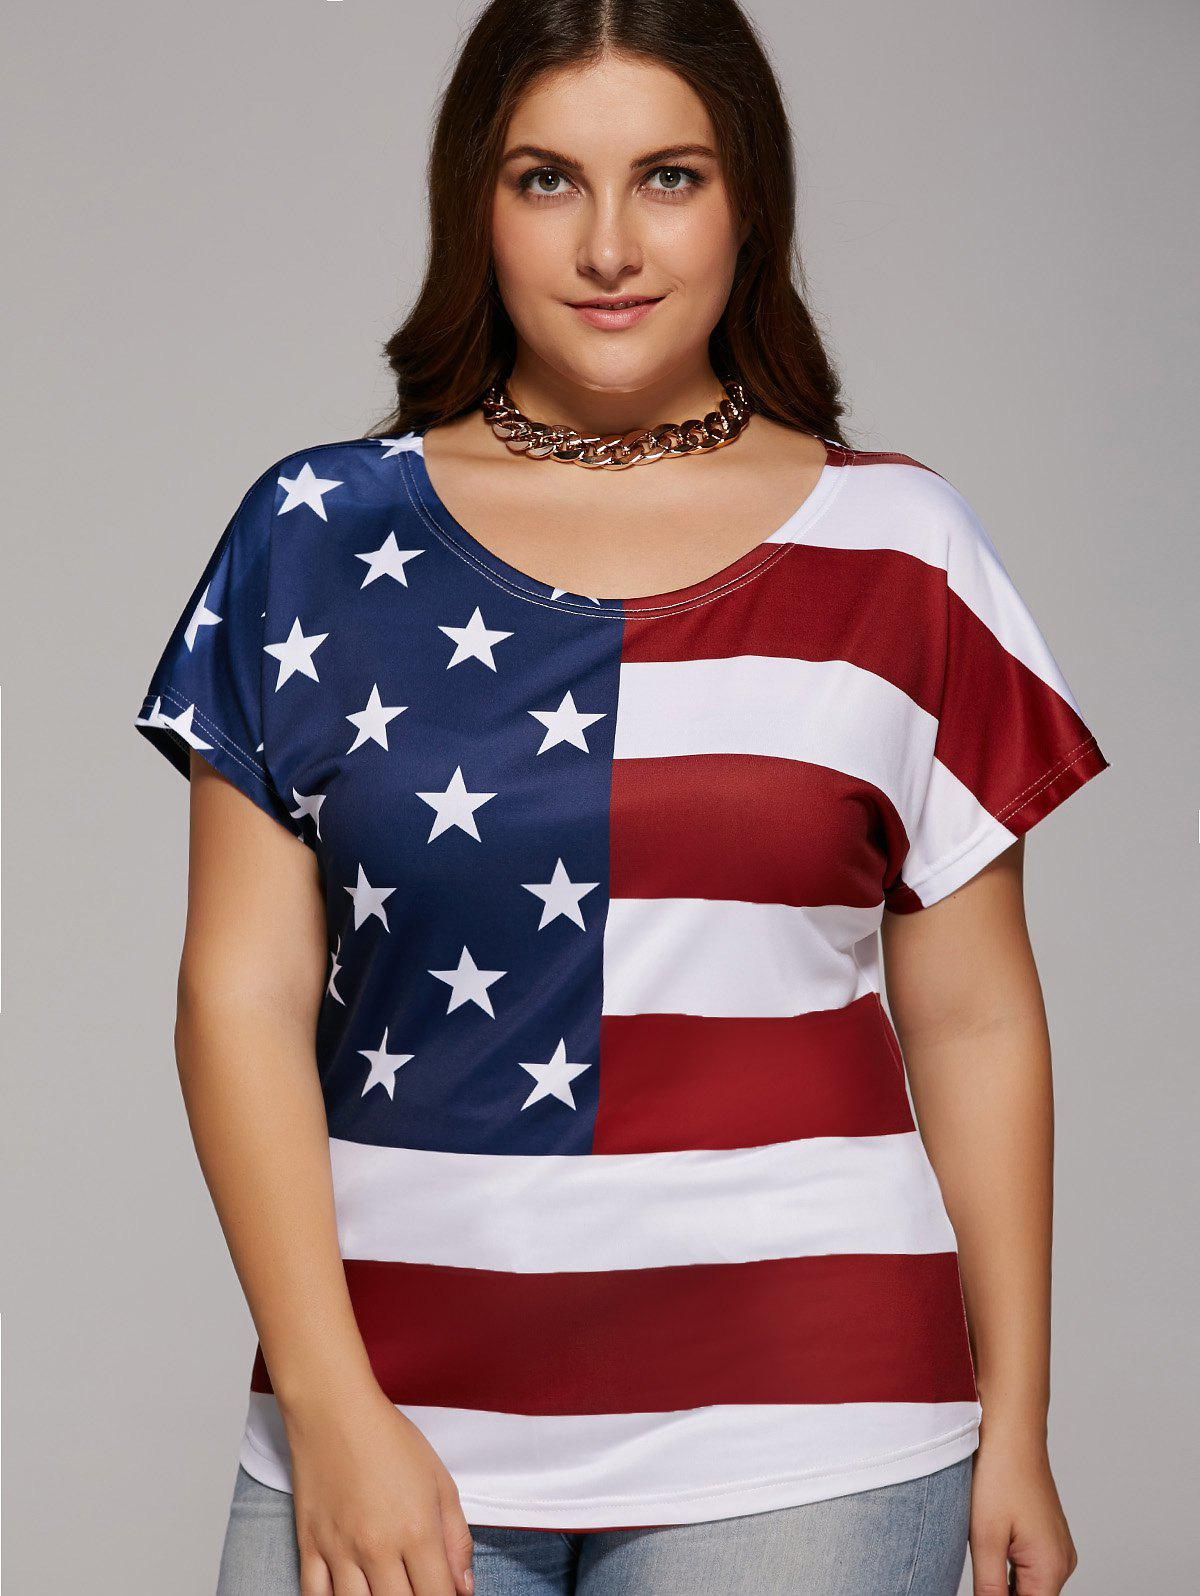 Oversized Chic Star and Striped T-Shirt - 5XL RED/WHITE/BLUE